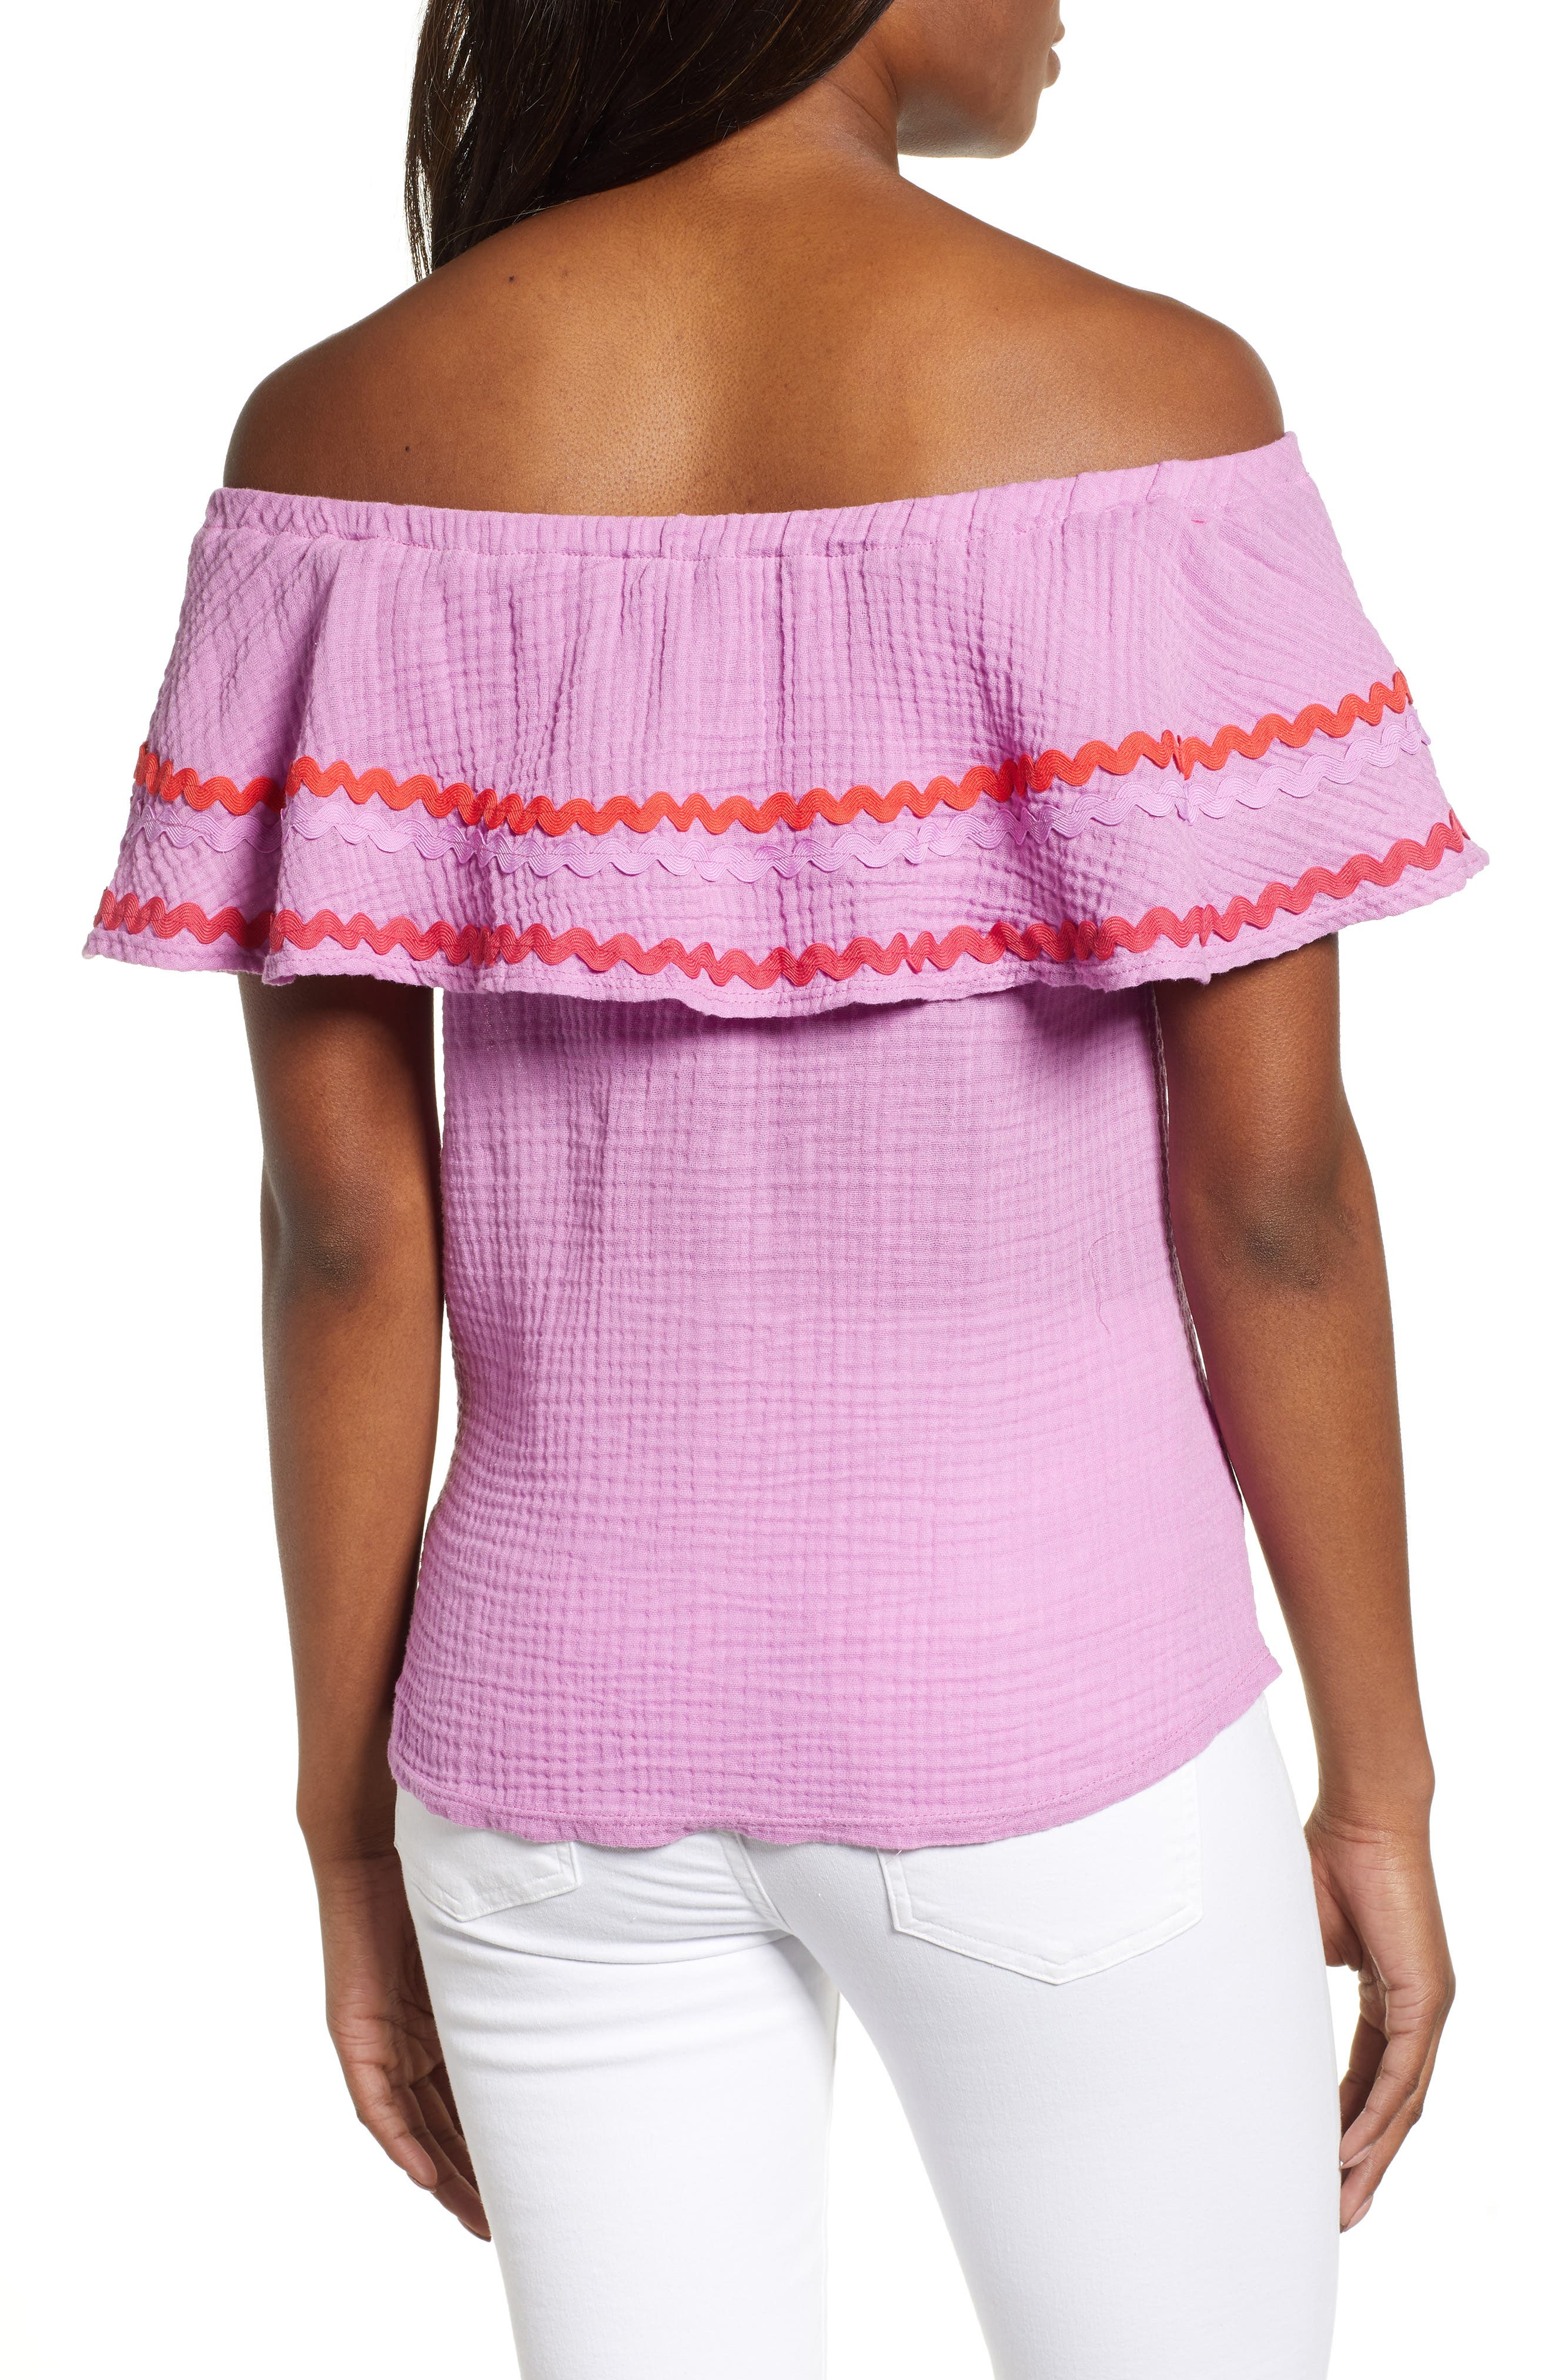 GIBSON, x Hi Sugarplum! Santa Fe Rickrack Off the Shoulder Top, Alternate thumbnail 2, color, PEONY